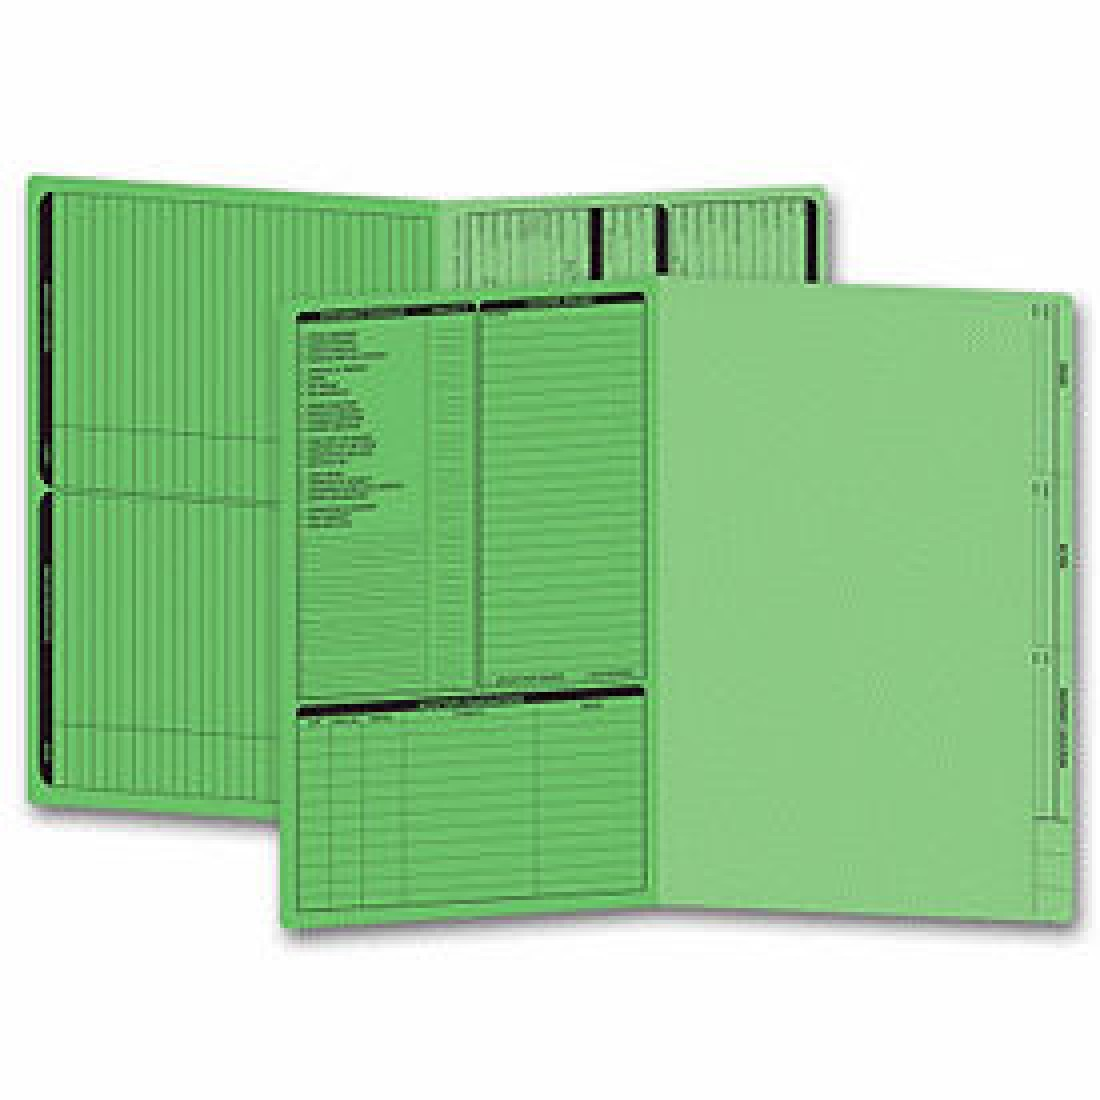 Real Estate Folder, Left Panel List, Legal Size, Green (Item #286G) - Business Checks Supplies  - Business Checks